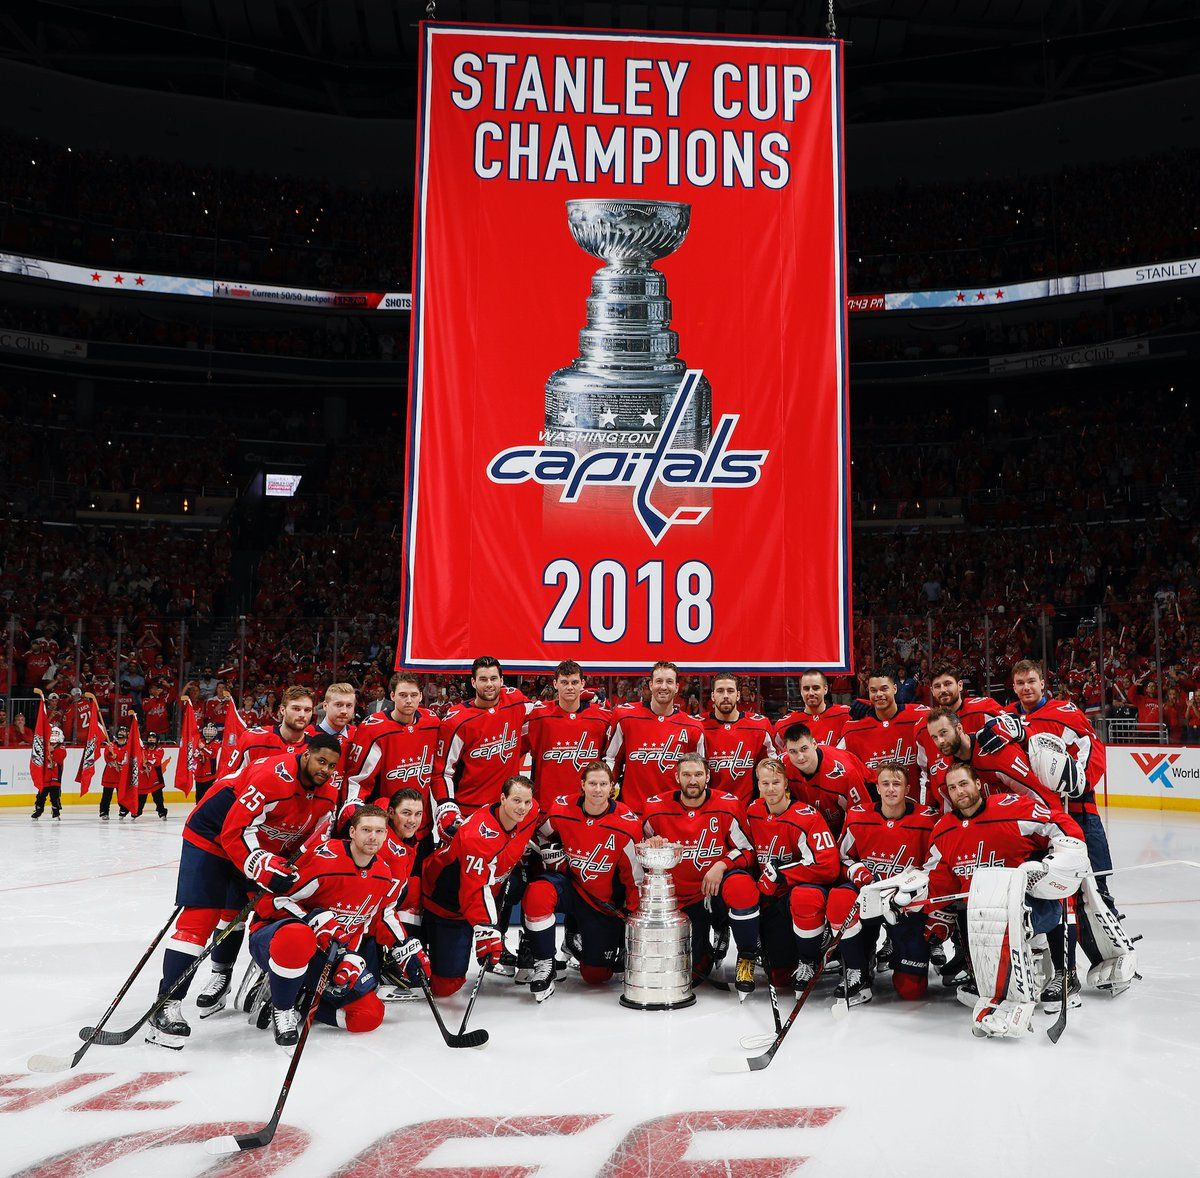 741a0ce66a64b Washington Capitals ( Capitals)